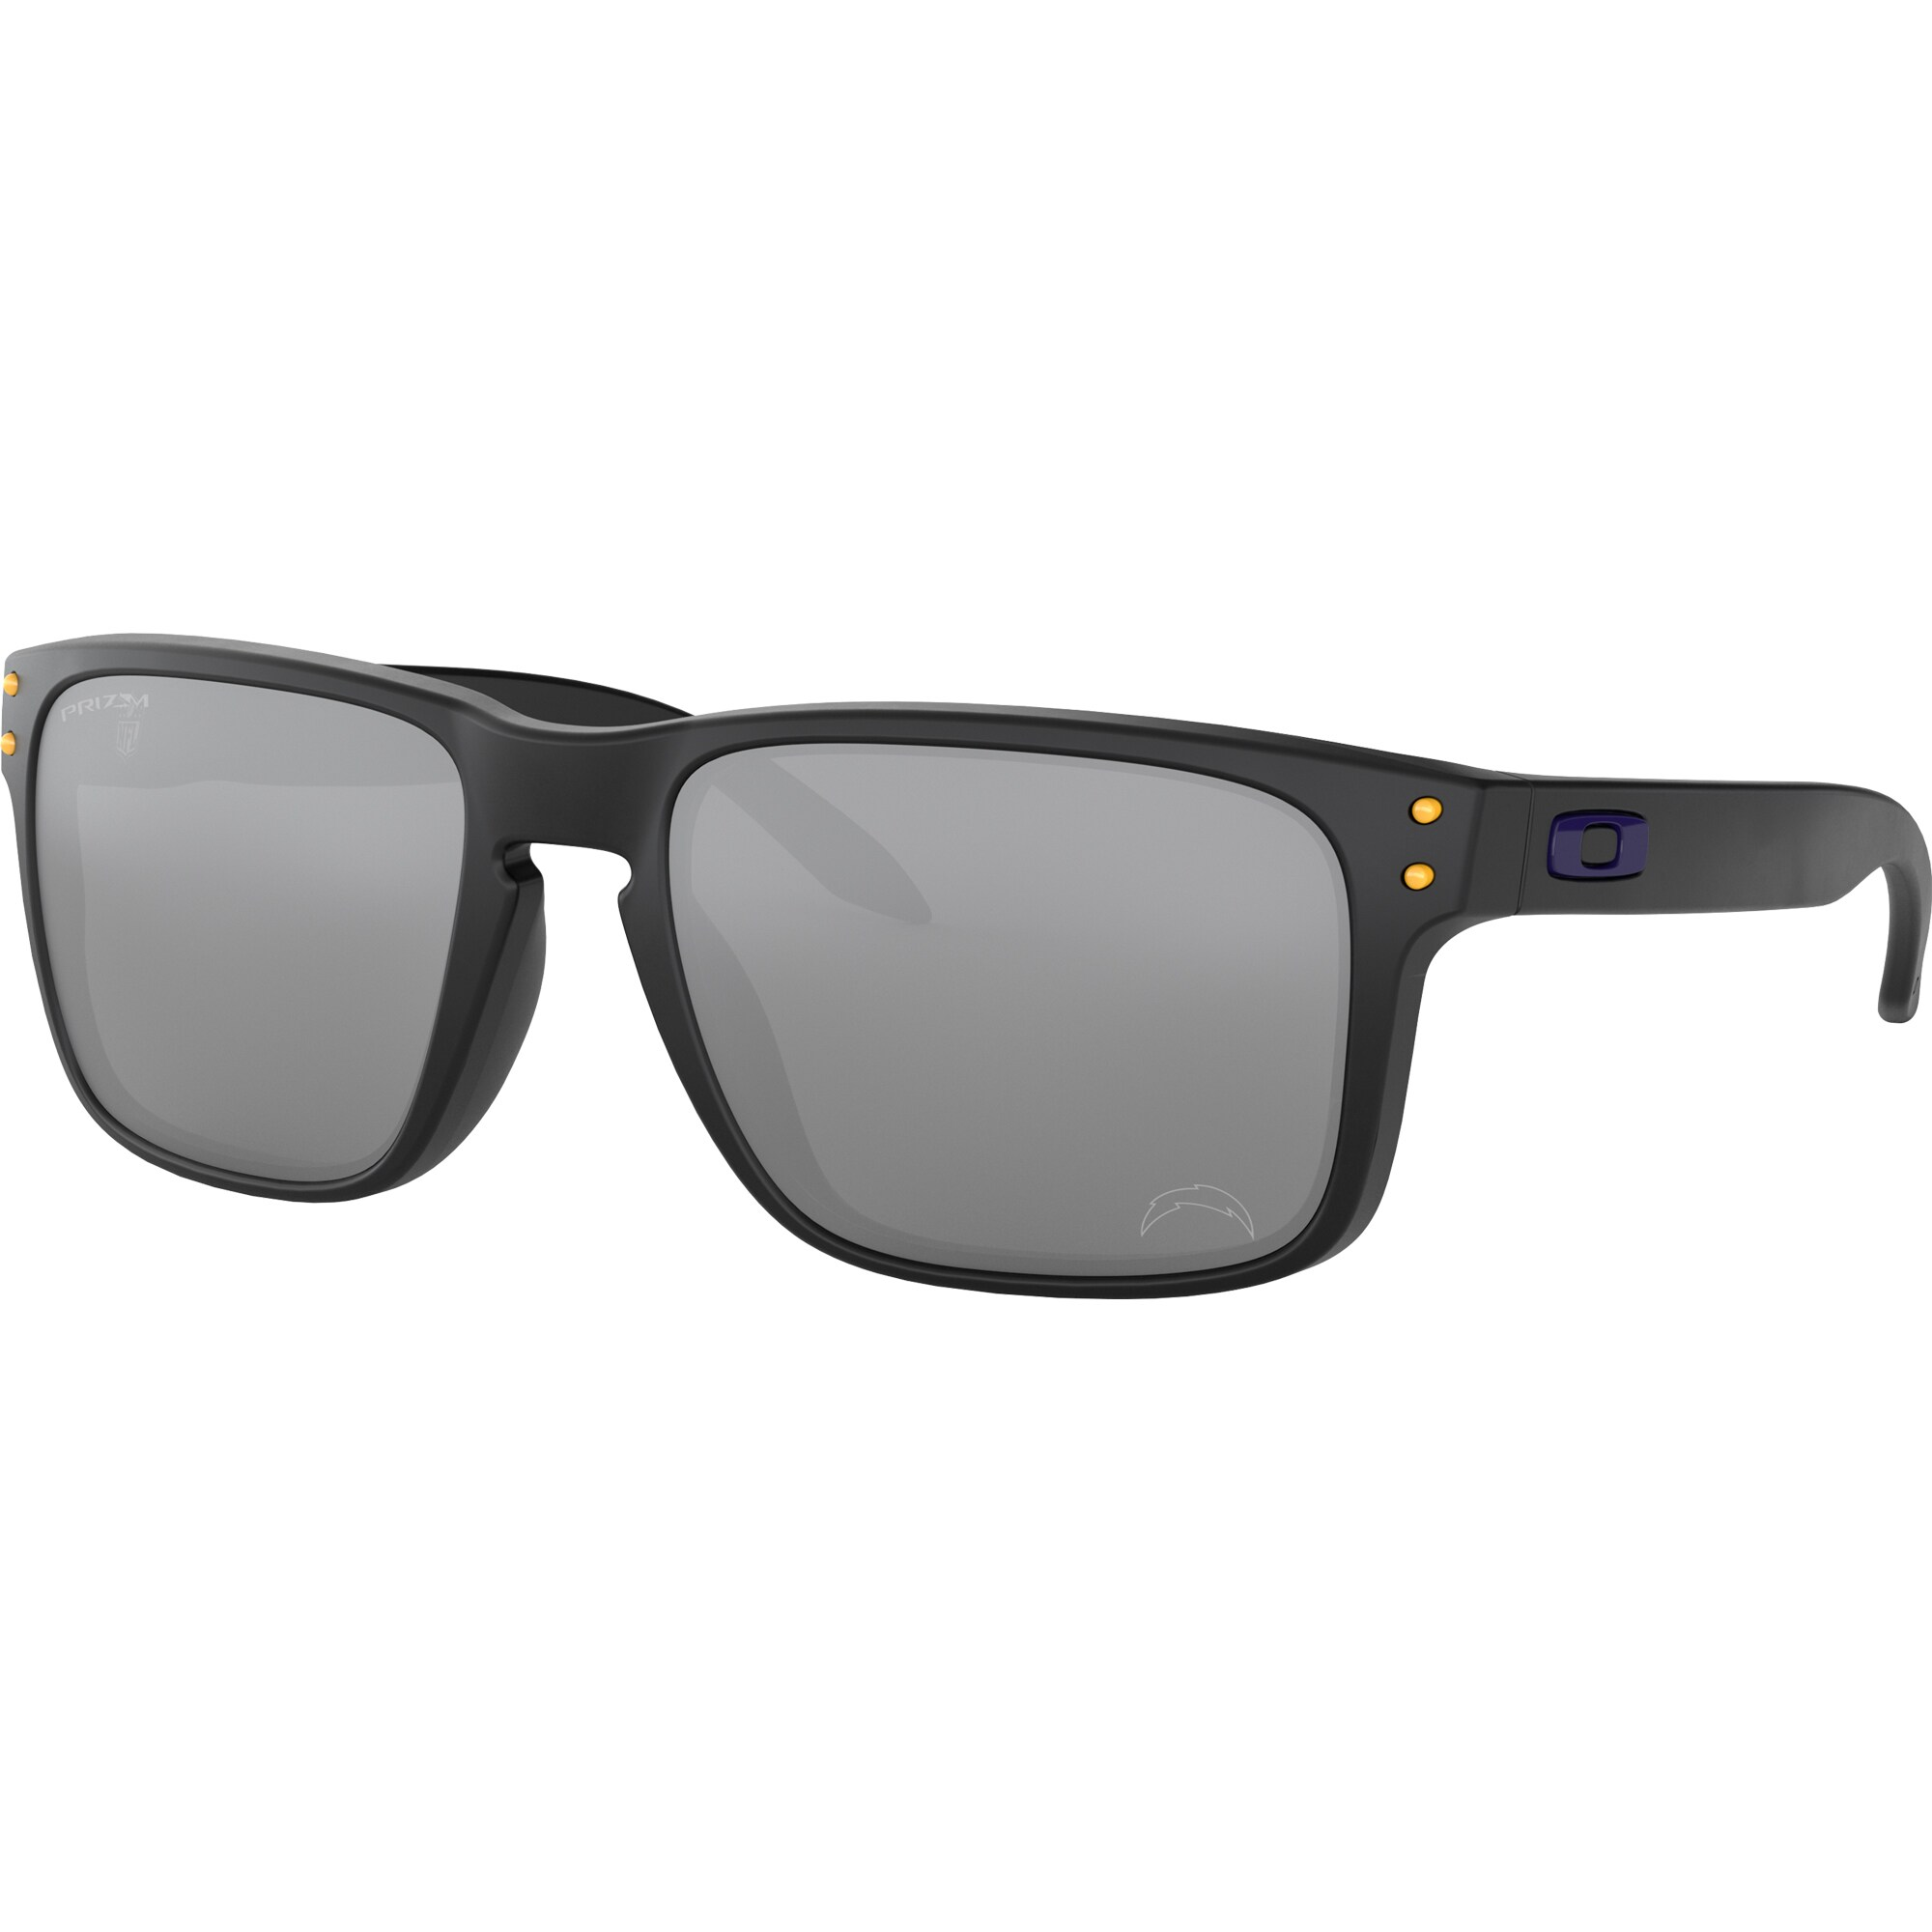 Los Angeles Chargers Oakley Holbrook Sunglasses